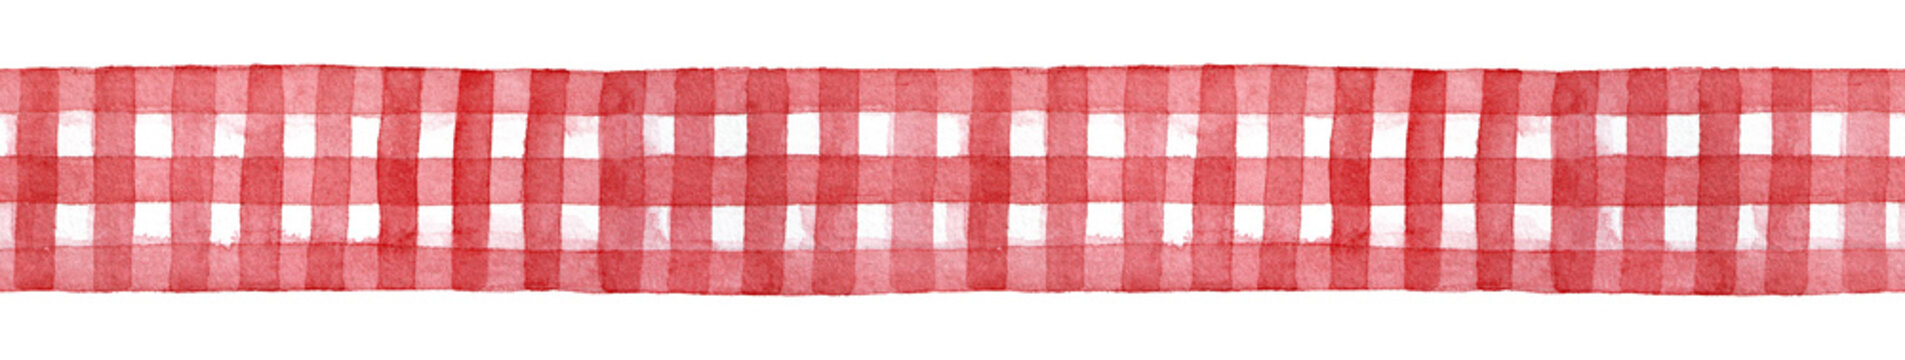 Red and white checkered gingham ribbon, decorative seamless template. Cute country style traditional element for design, craft, home decor. Hand drawn watercolour graphic illustration, cutout clipart.